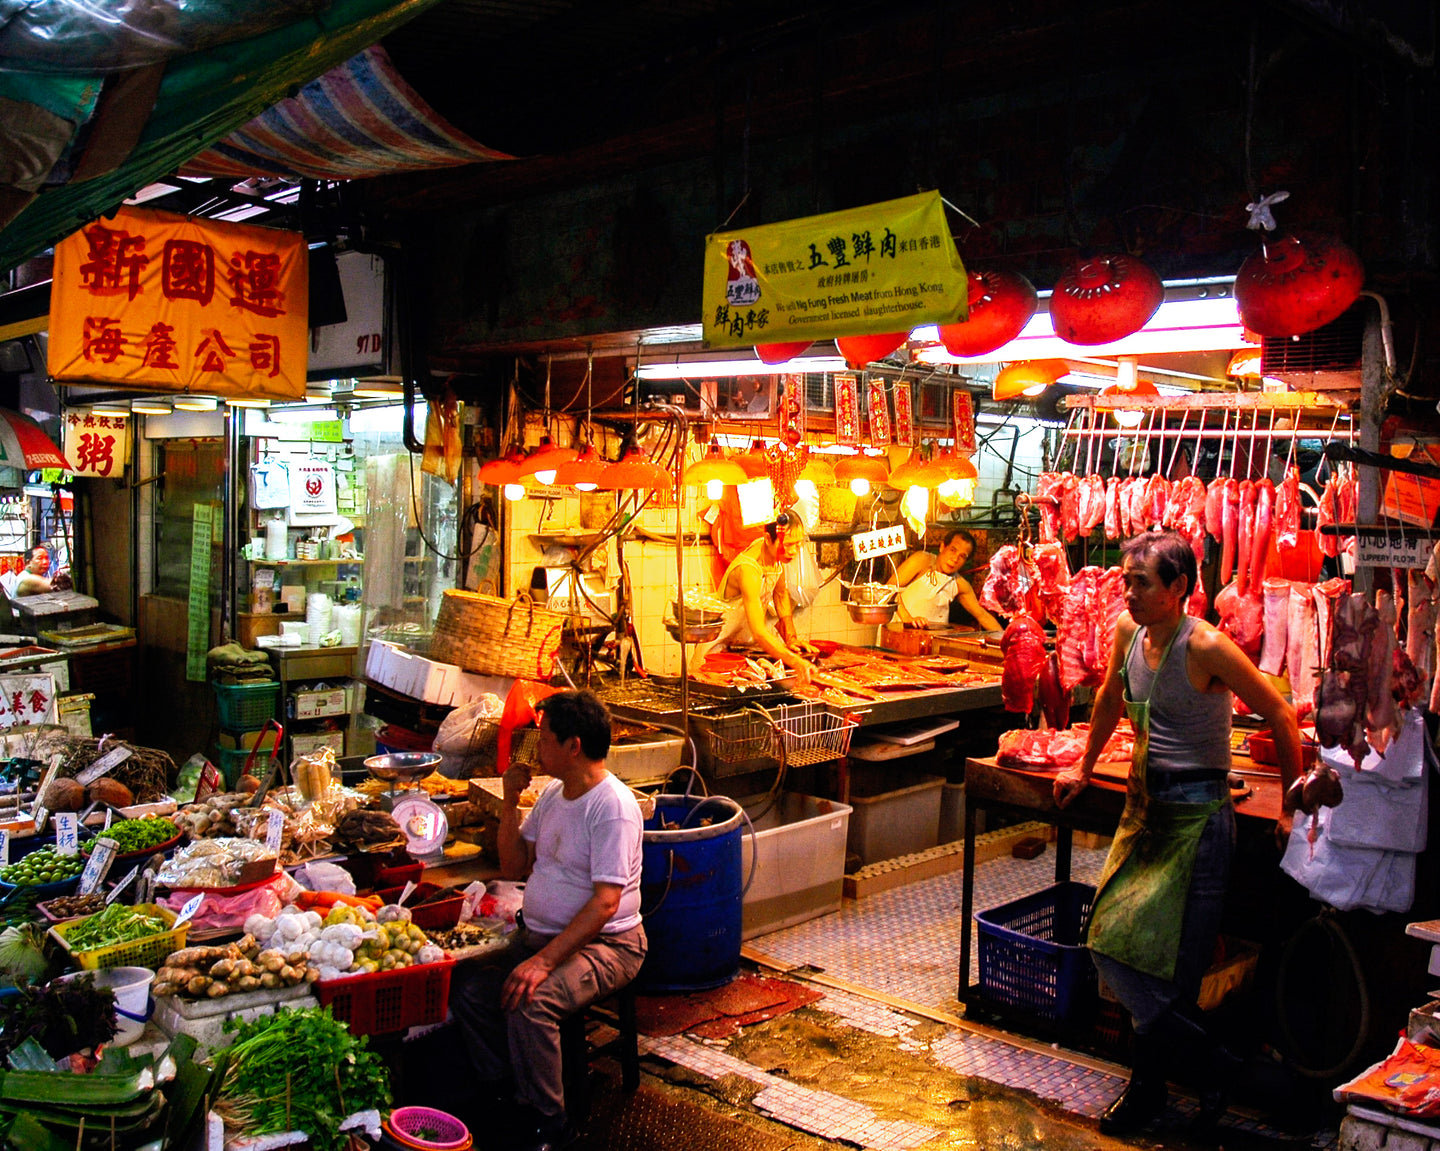 Hong Kong Meat Market at Night - Tracy McCrackin Photography